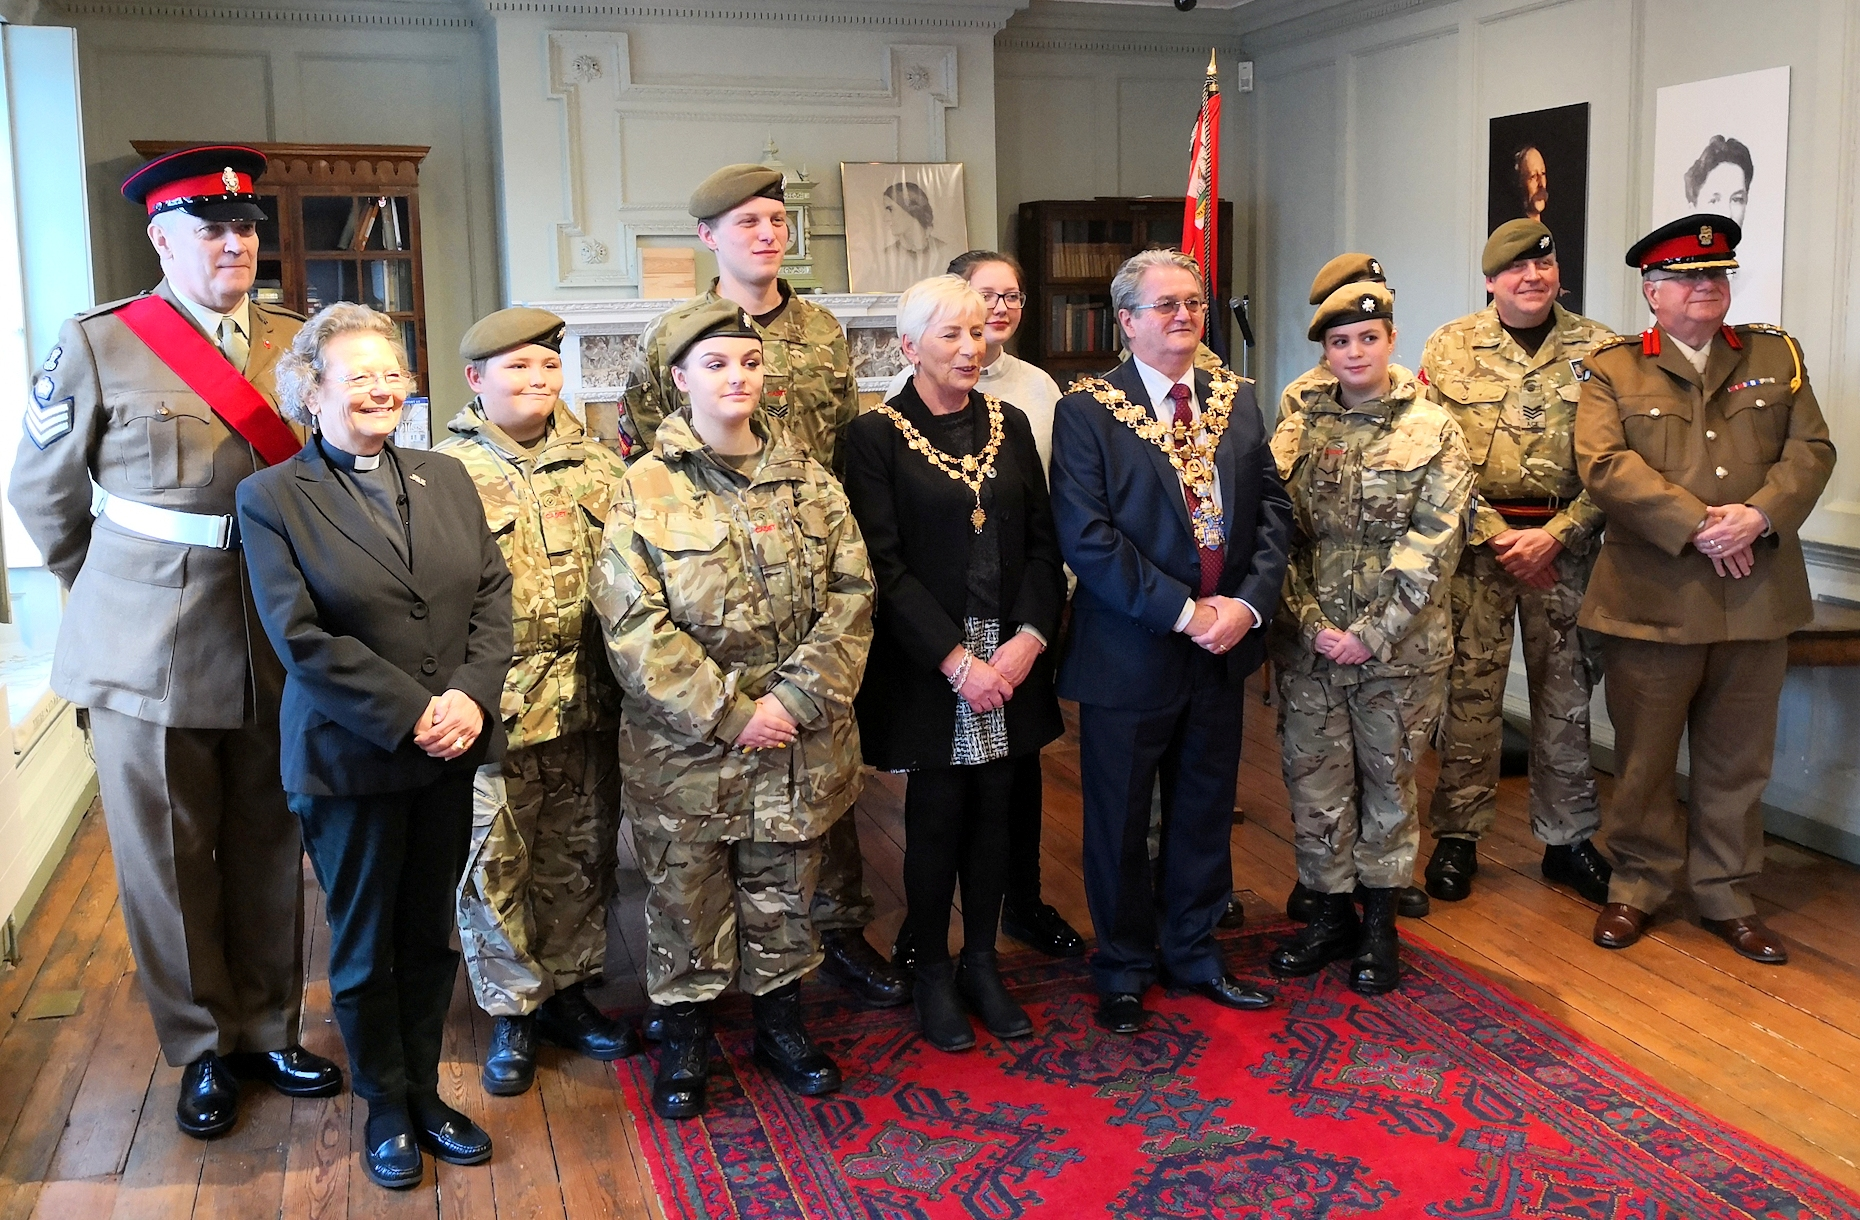 Colonel Mark Knight (right), Colour Sergeant Tim Scargill (left), the Rev Carol Monk (second left) and Wisbech mayor Councillor Peter Human (centre) with members of the Wisbech detachment of the Cambridgeshire army cadet force in the Long Room at the Birthplace House